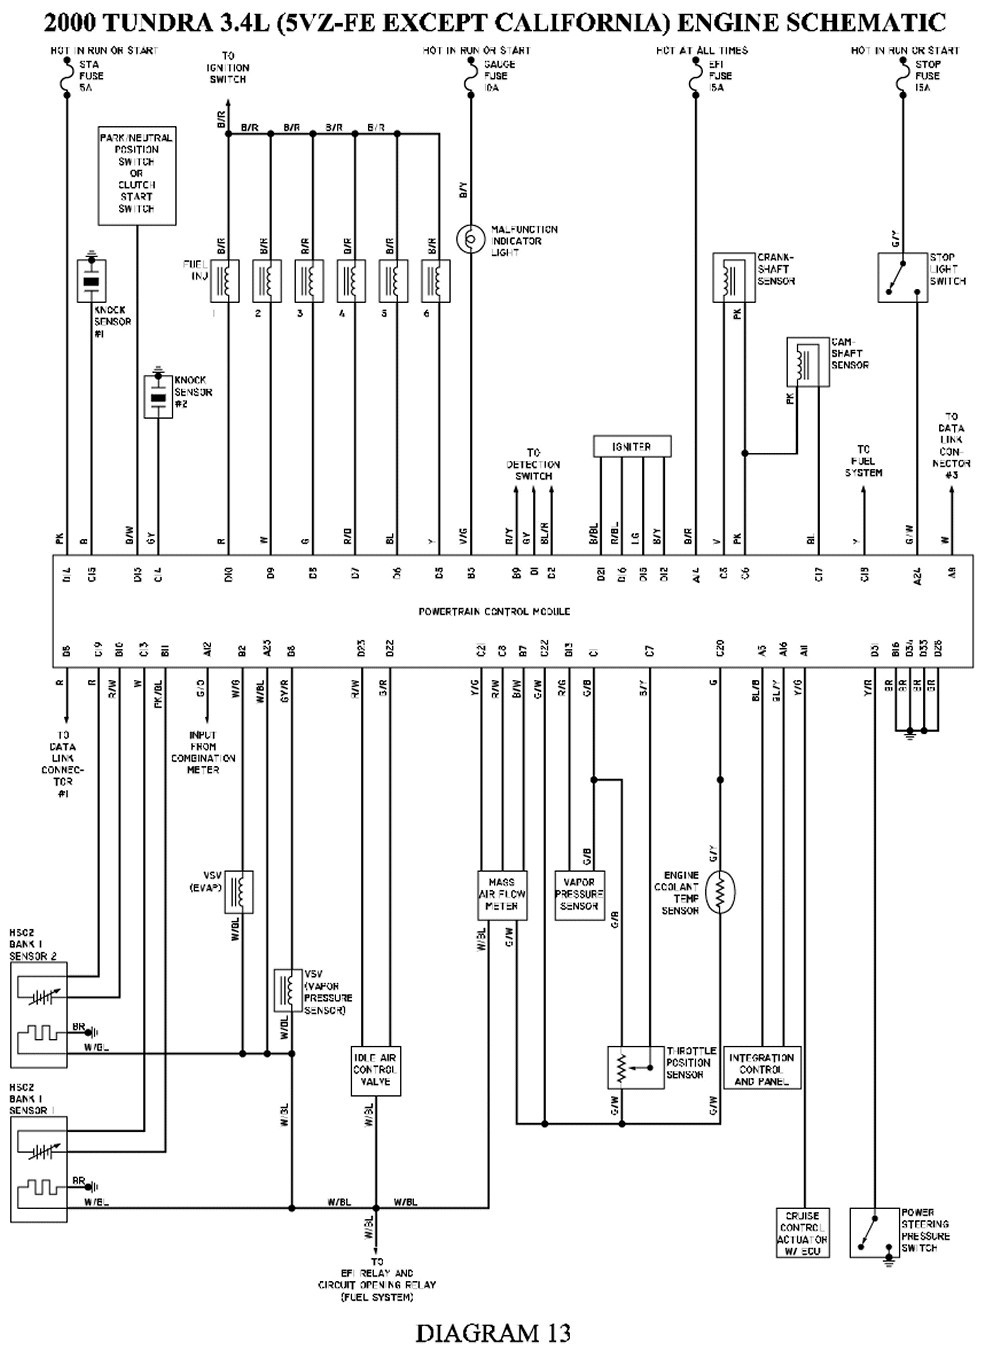 Engine Diagram For Toyota Tundra